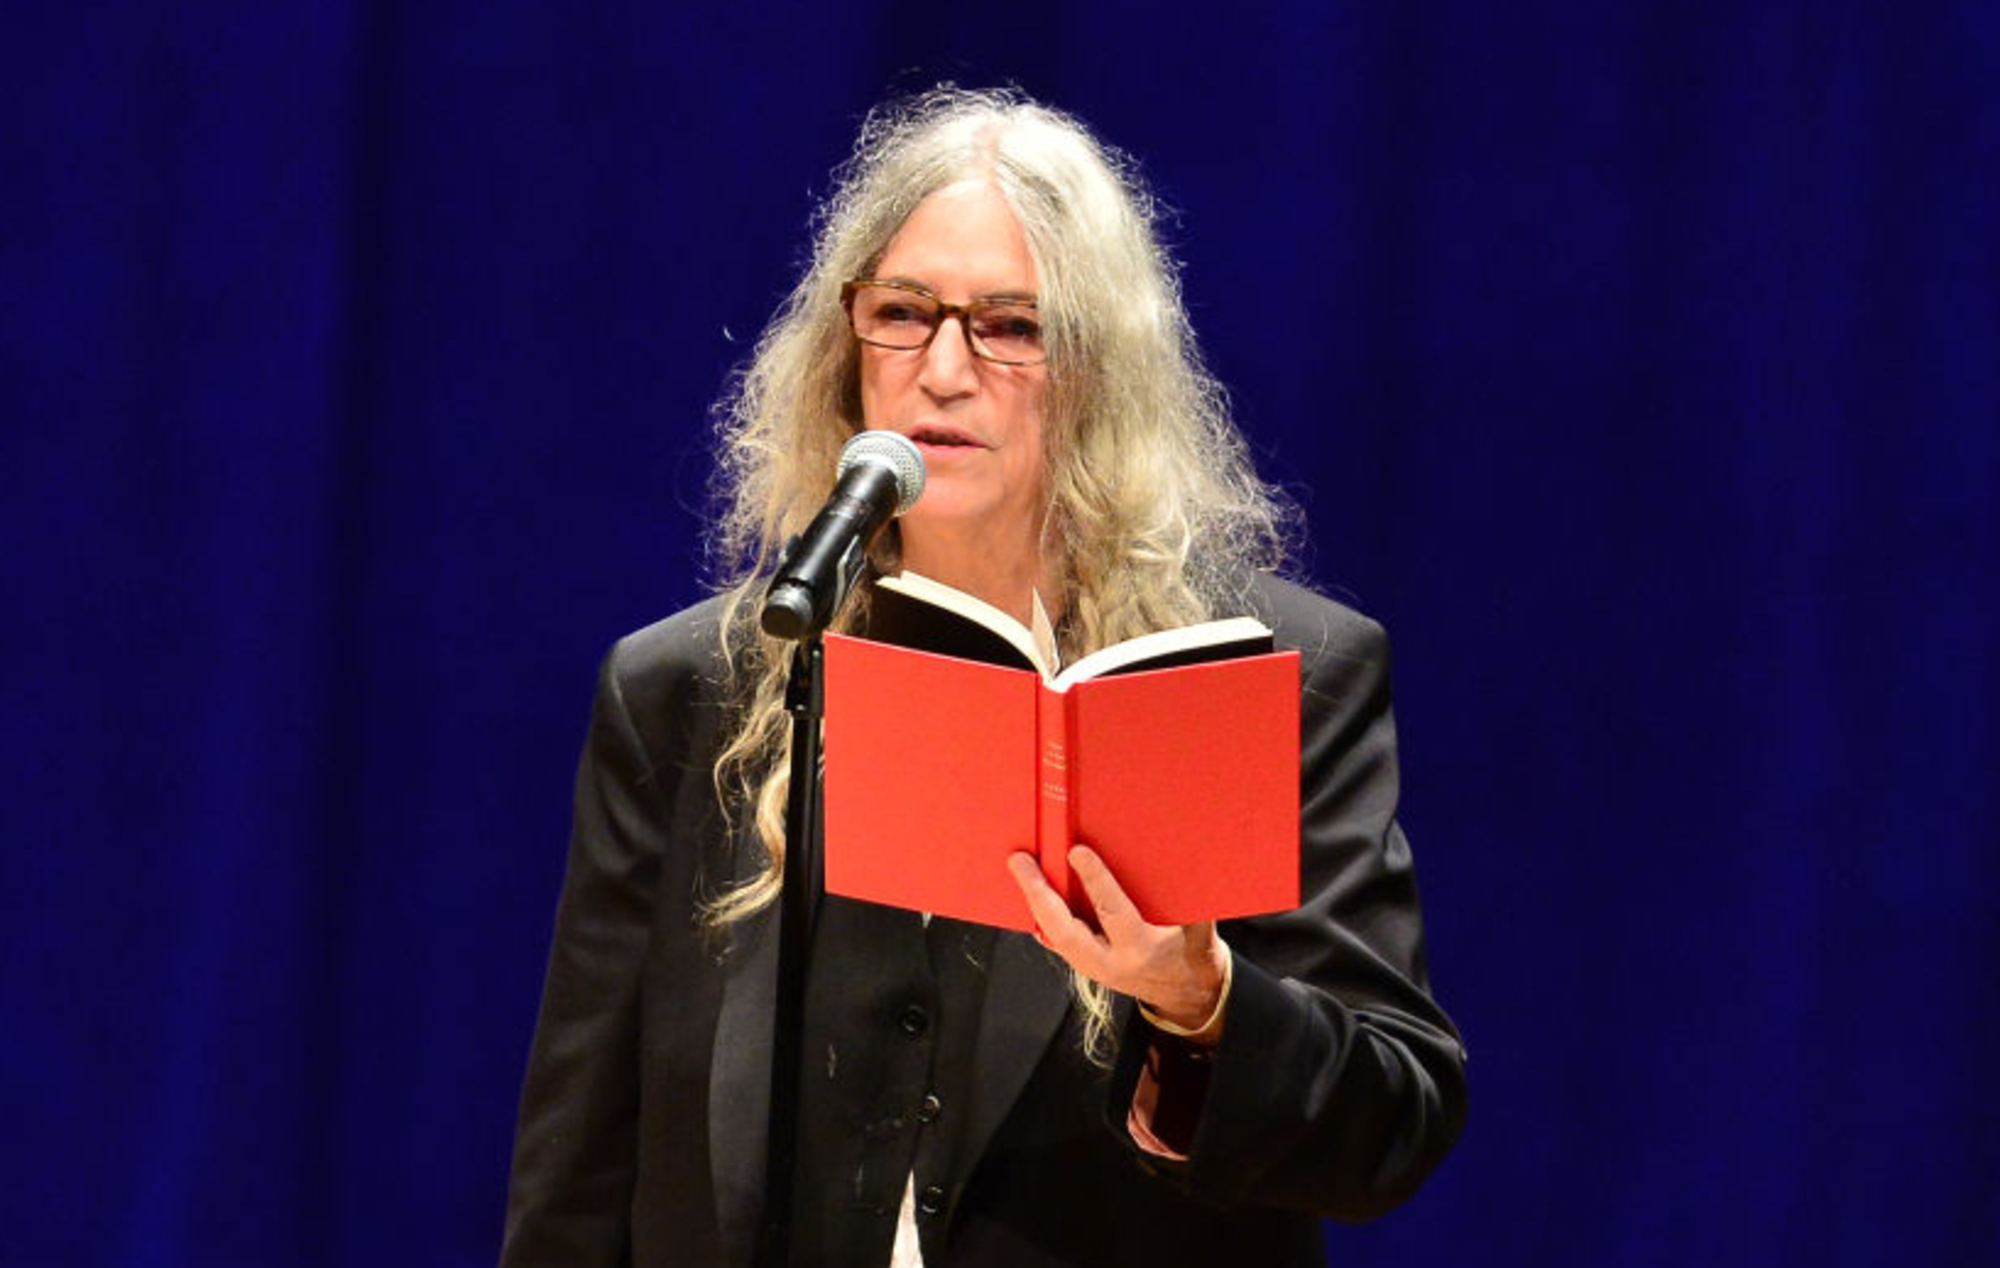 Patti Smith announces virtual performance featuring music and book reading